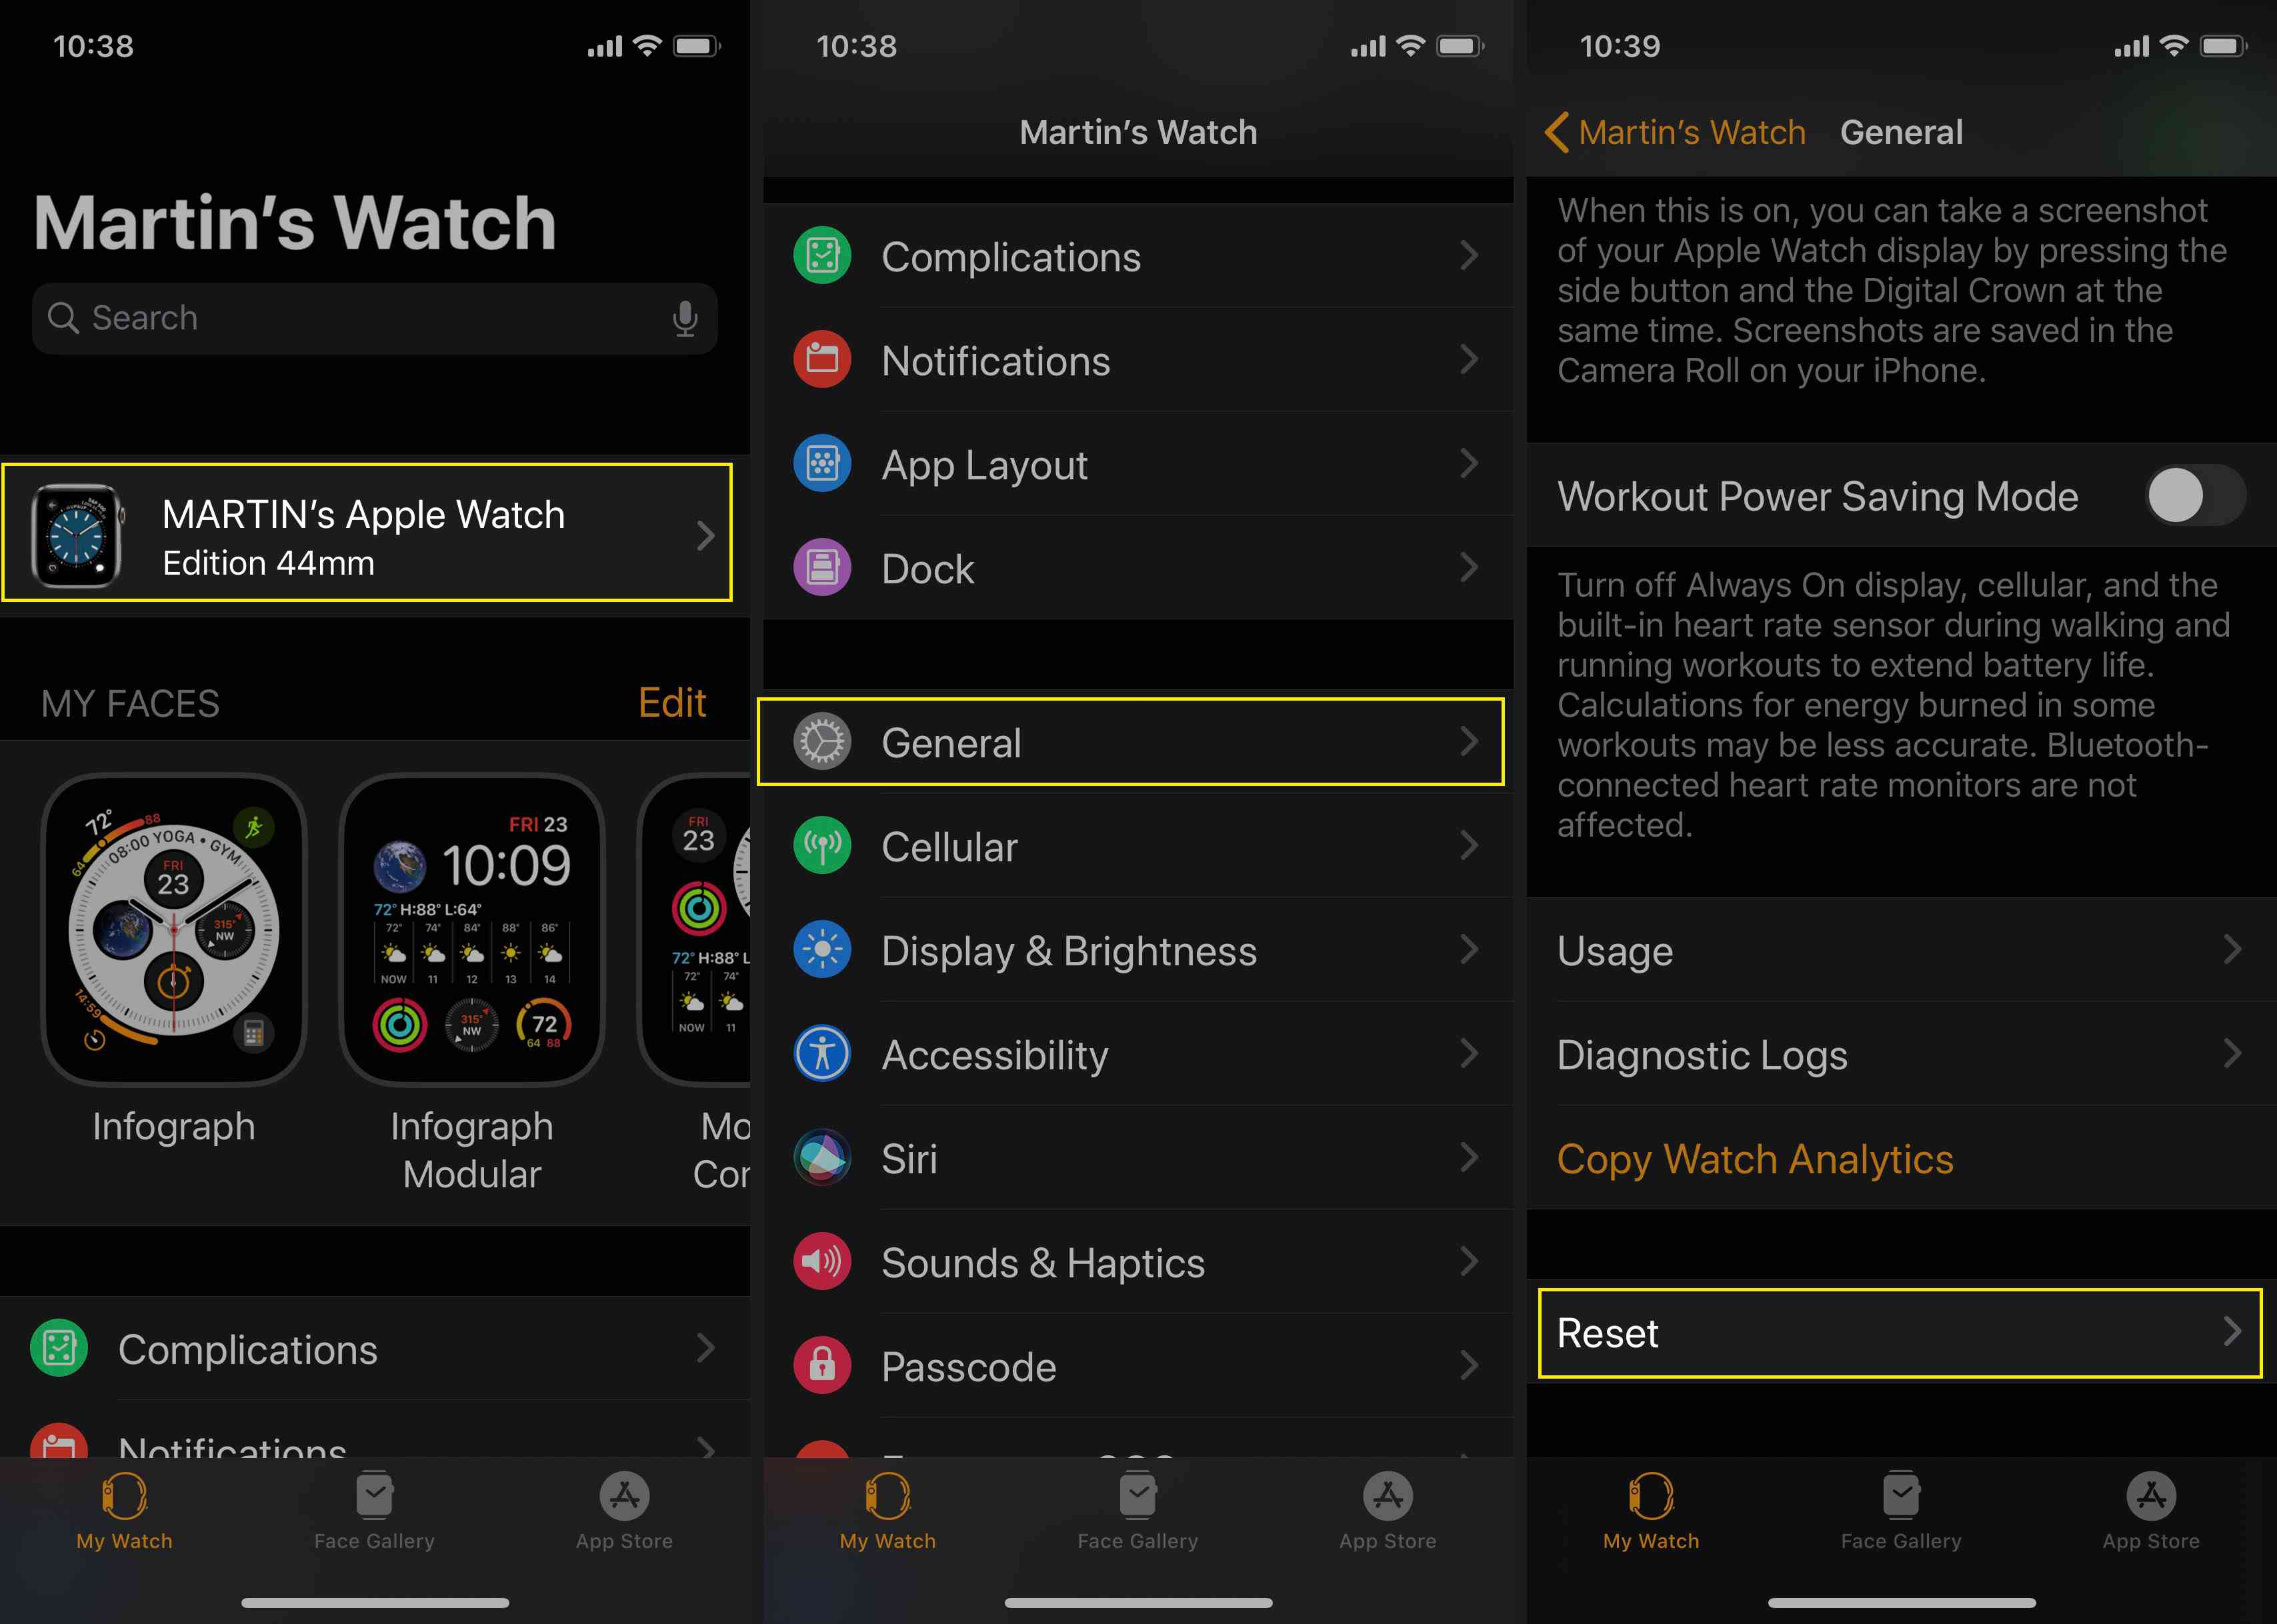 Use the Apple Watch to reset your device and remove the passcode